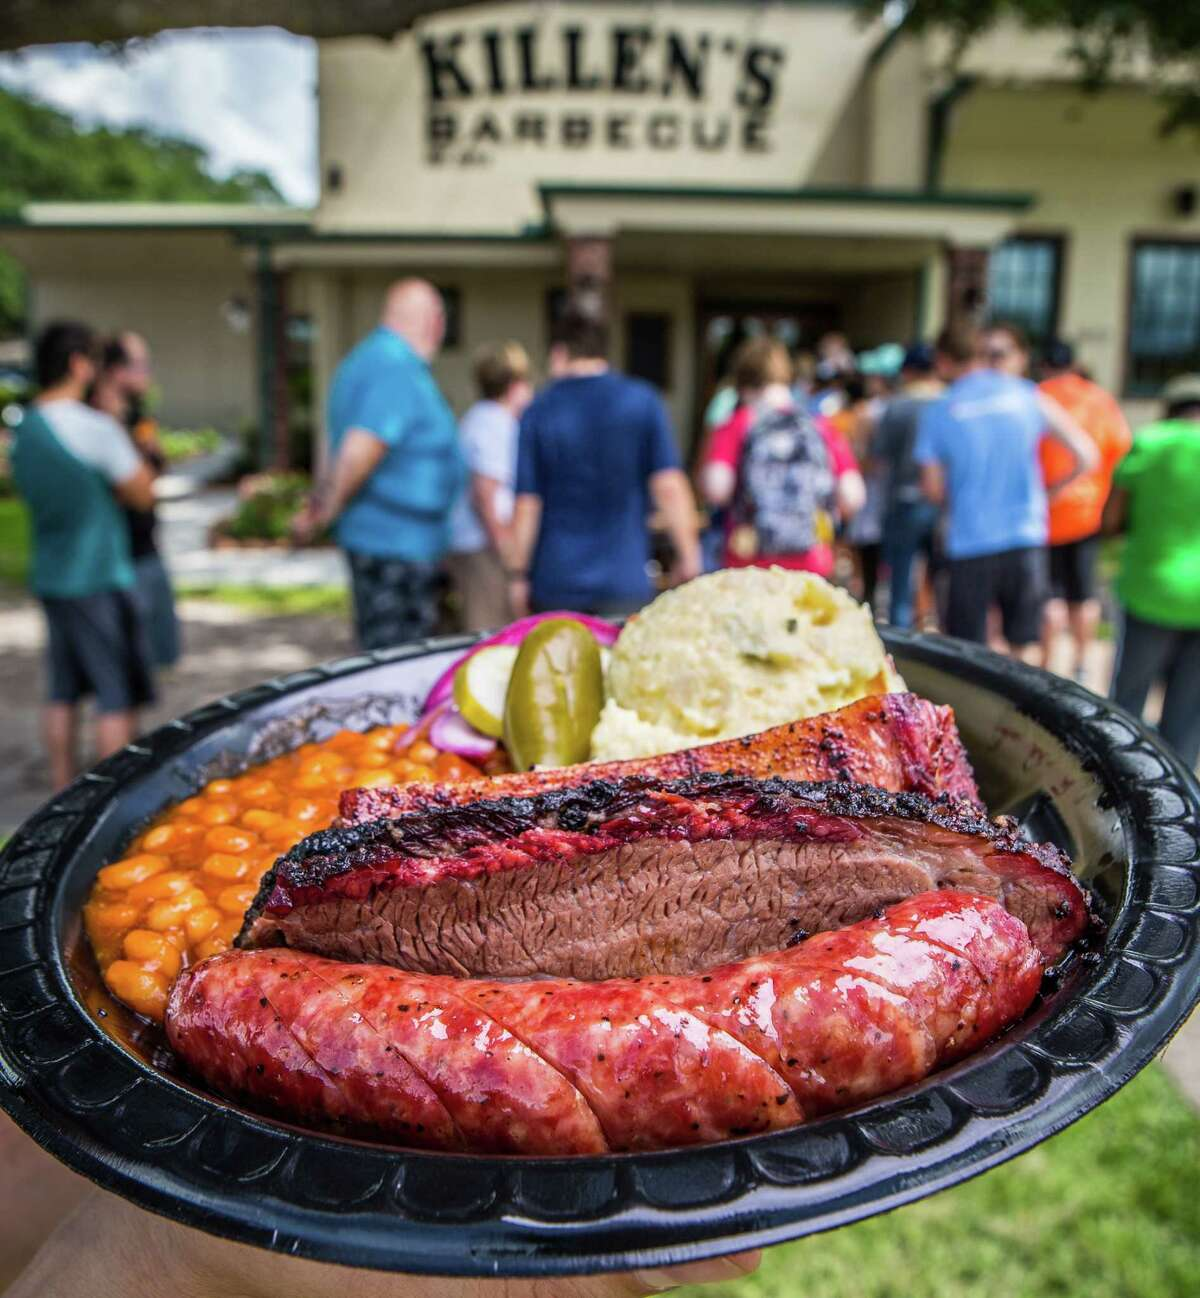 PHOTOS: Top-rated restaurants in the suburbsKillen's Barbecue's cult-like following in Pearland has helped it expand into the Houston market and is one reason why it is the top-rated restaurant in the area. >>See more for the No. 1 rated restaurant in every Houston suburb, according to Yelp...